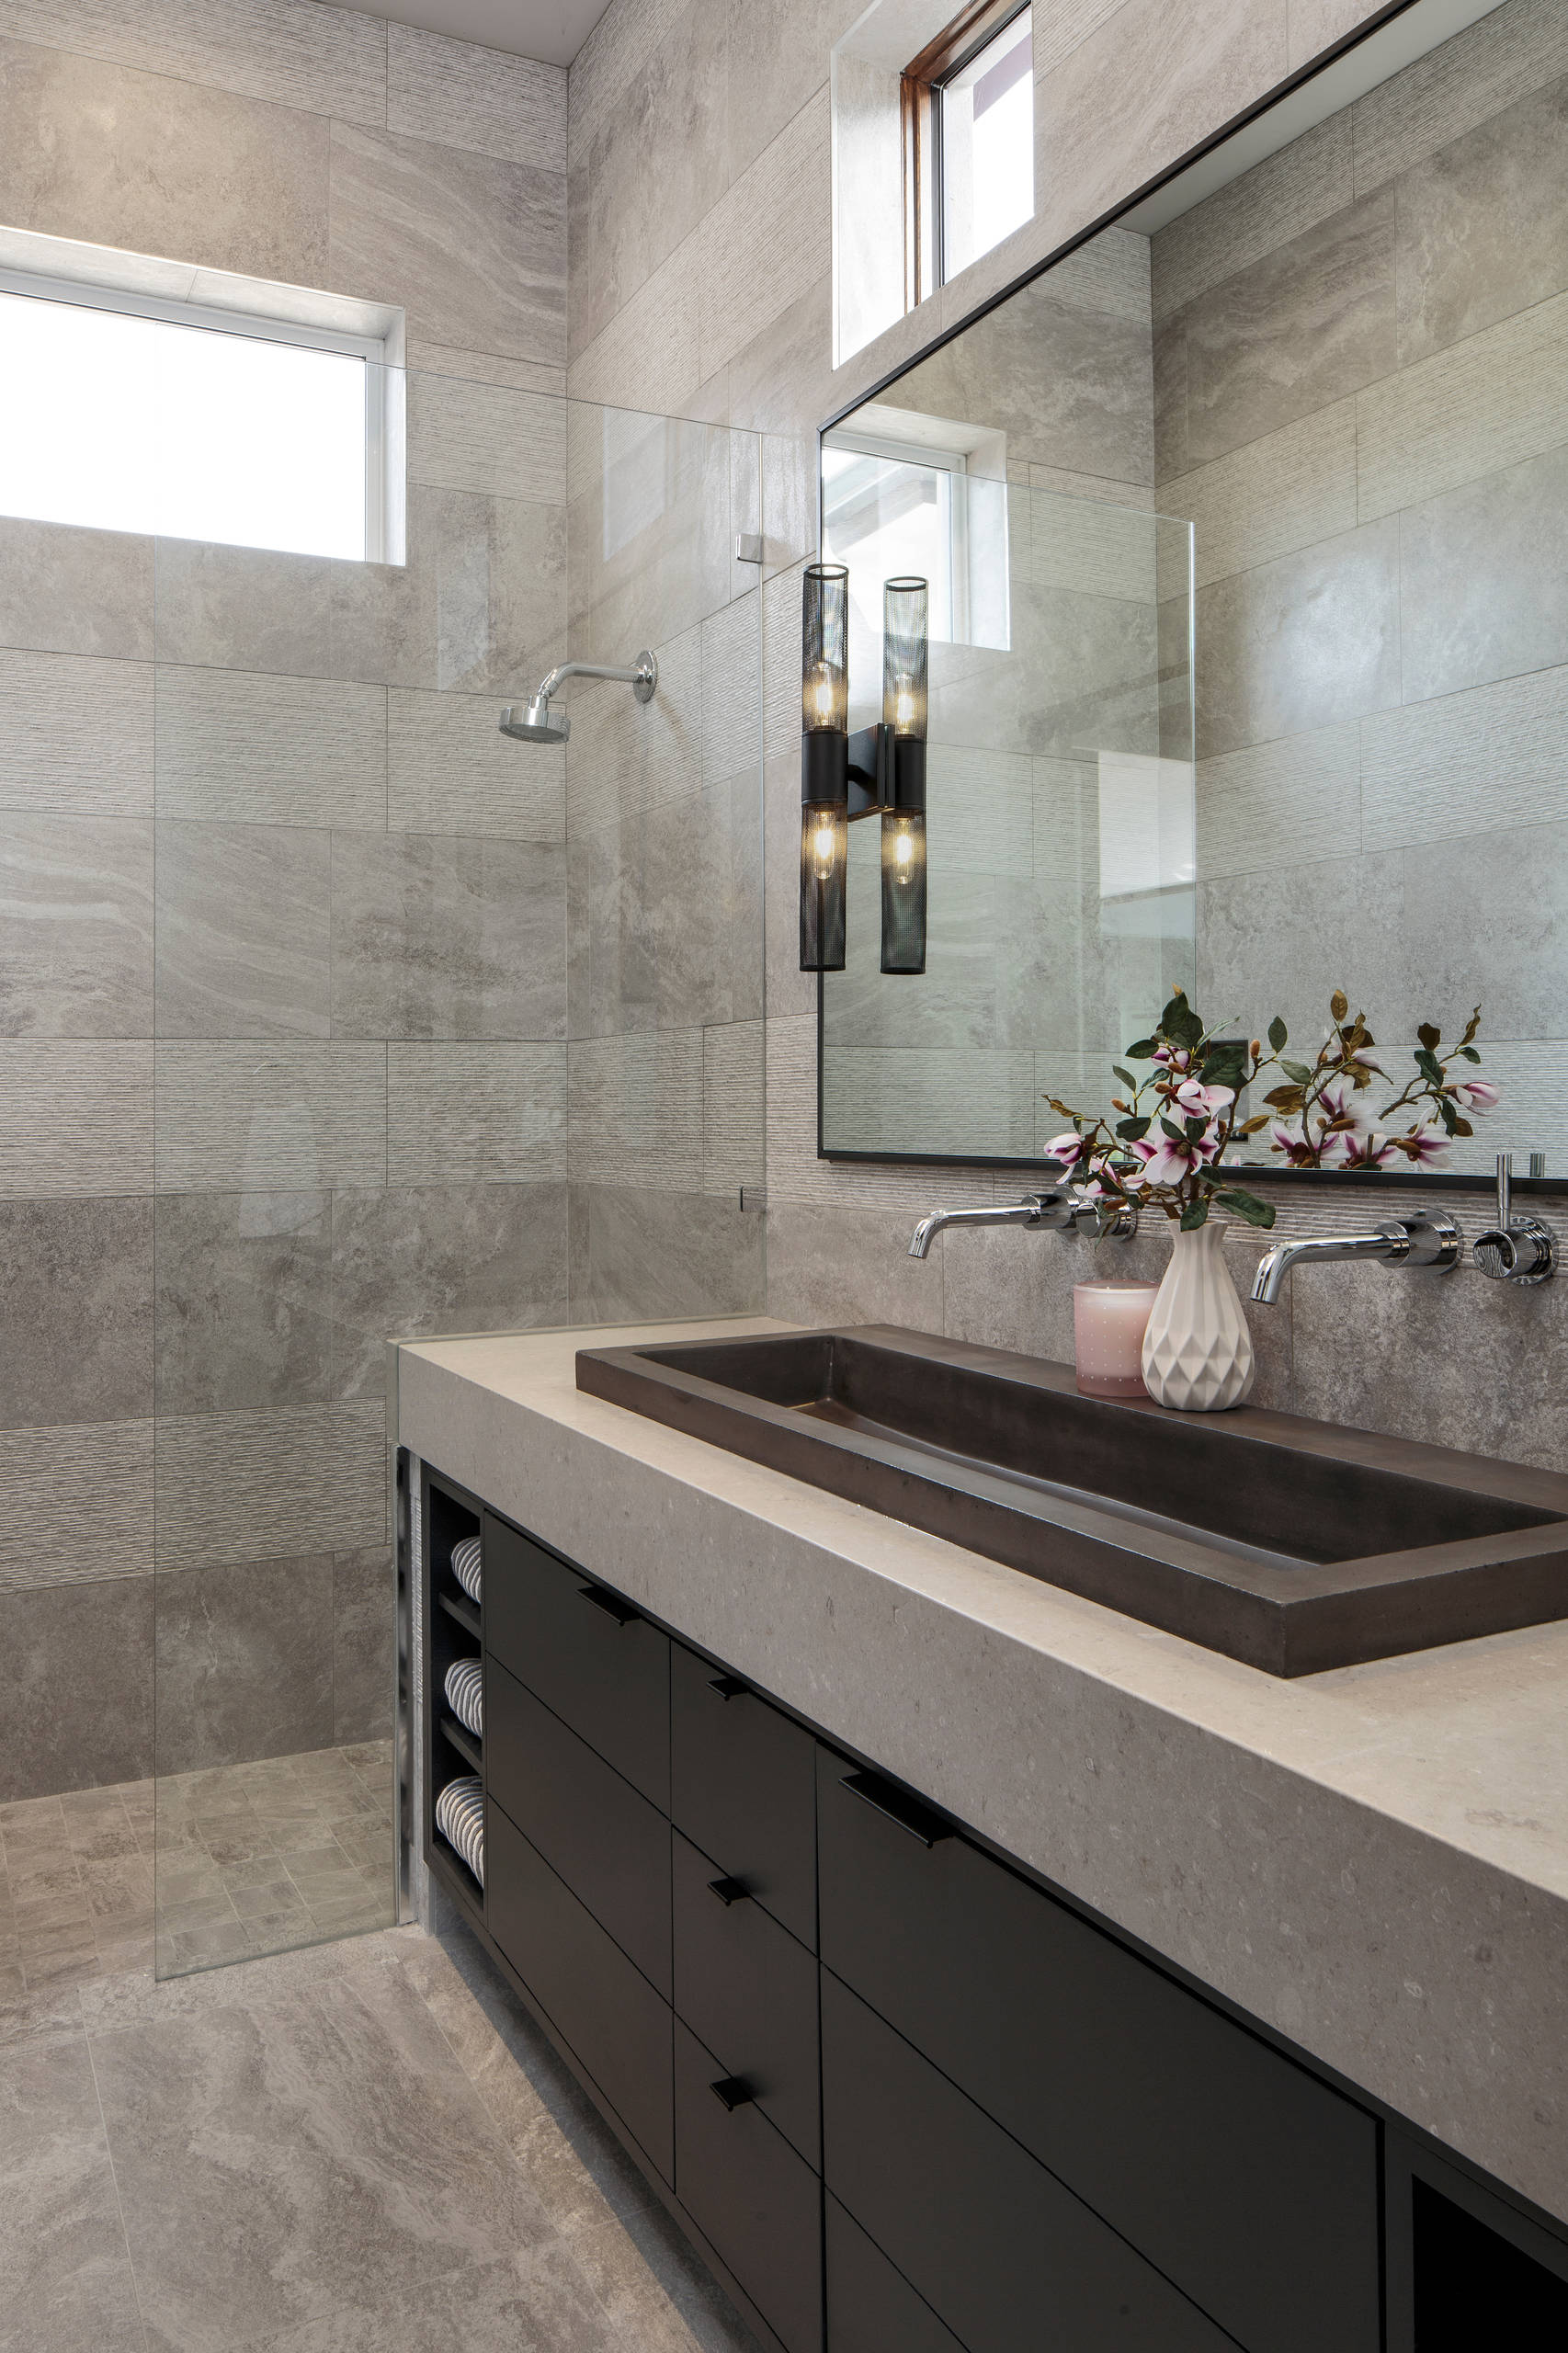 75 Beautiful Mid Sized Bathroom Pictures Ideas November 2020 Houzz